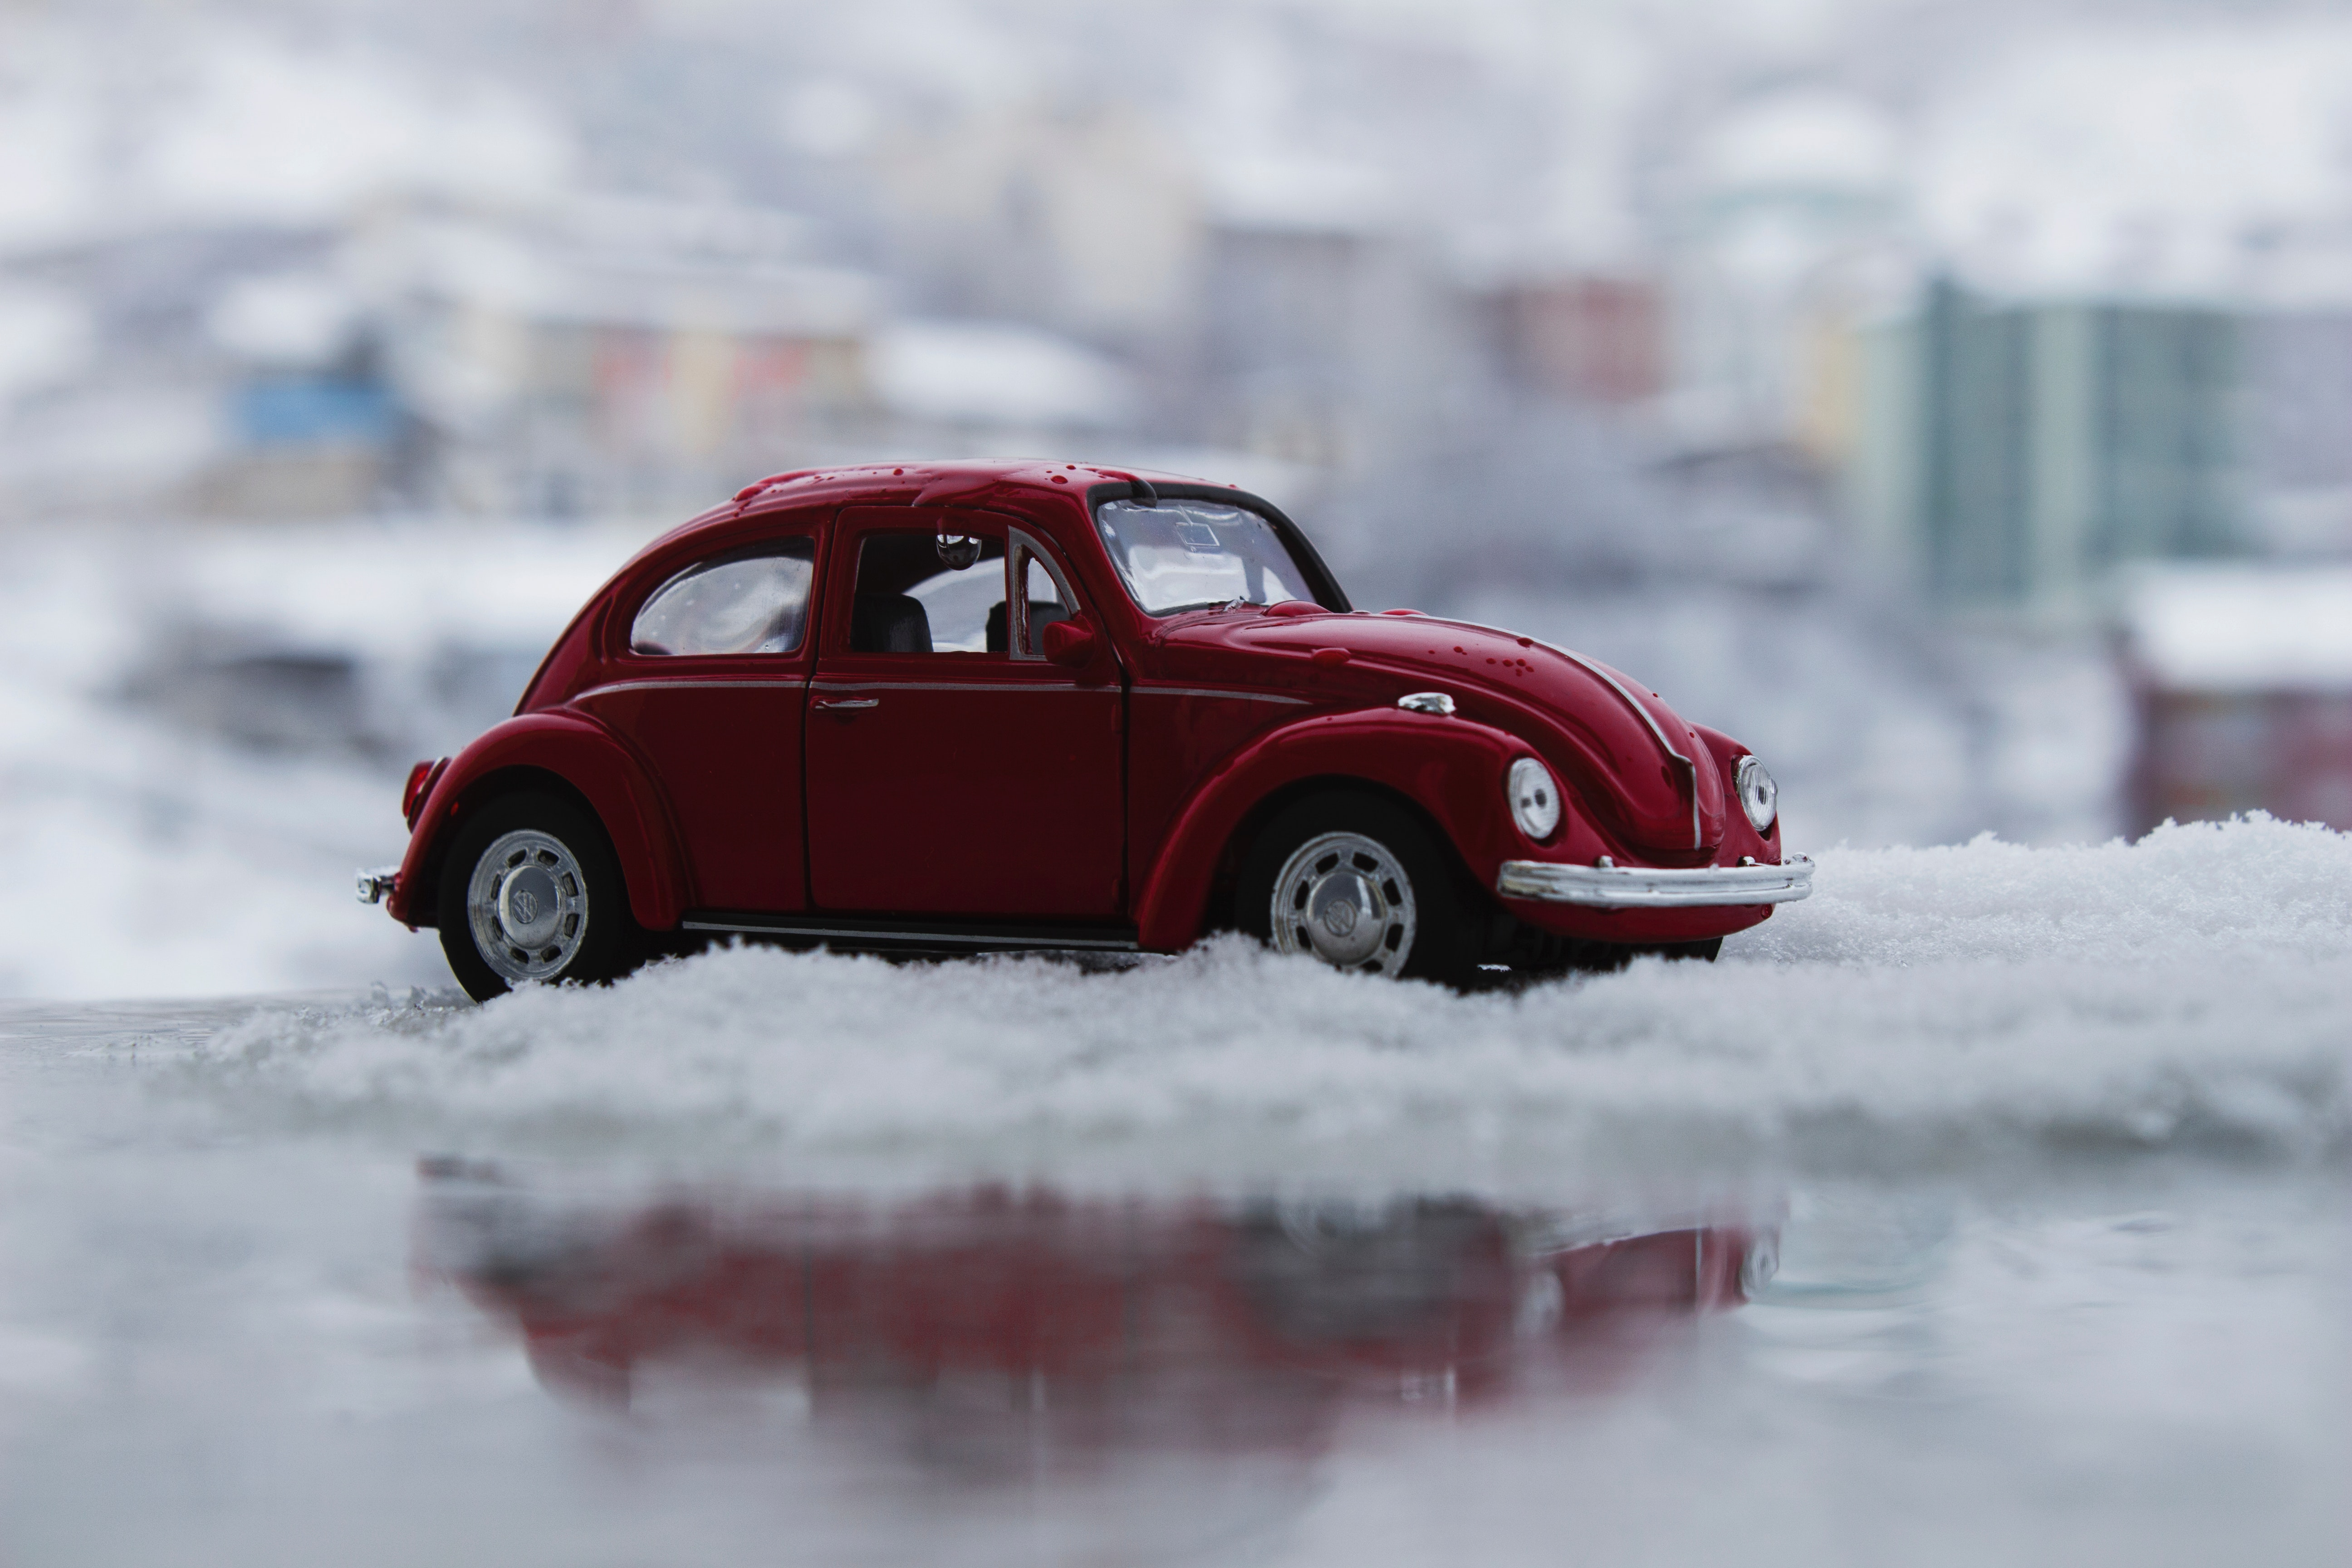 Red Toy Car In Snow Free Stock Photo